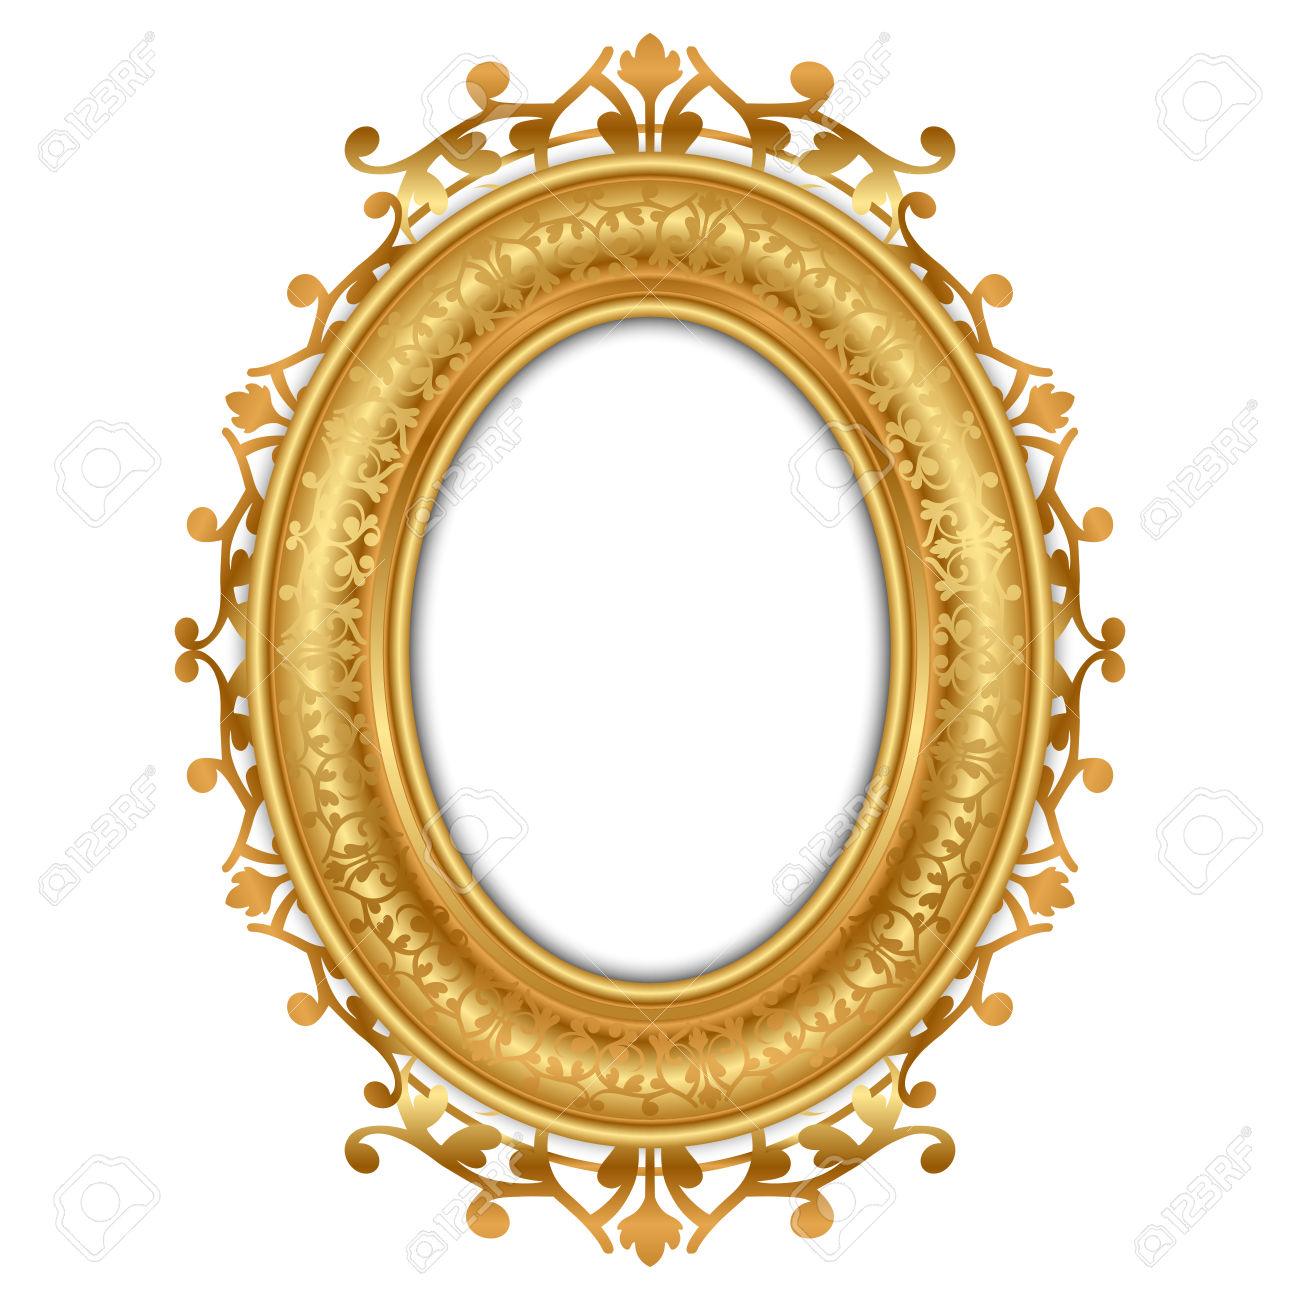 1300x1300 Oval Gold Frame Clipart Amp Oval Gold Frame Clip Art Images